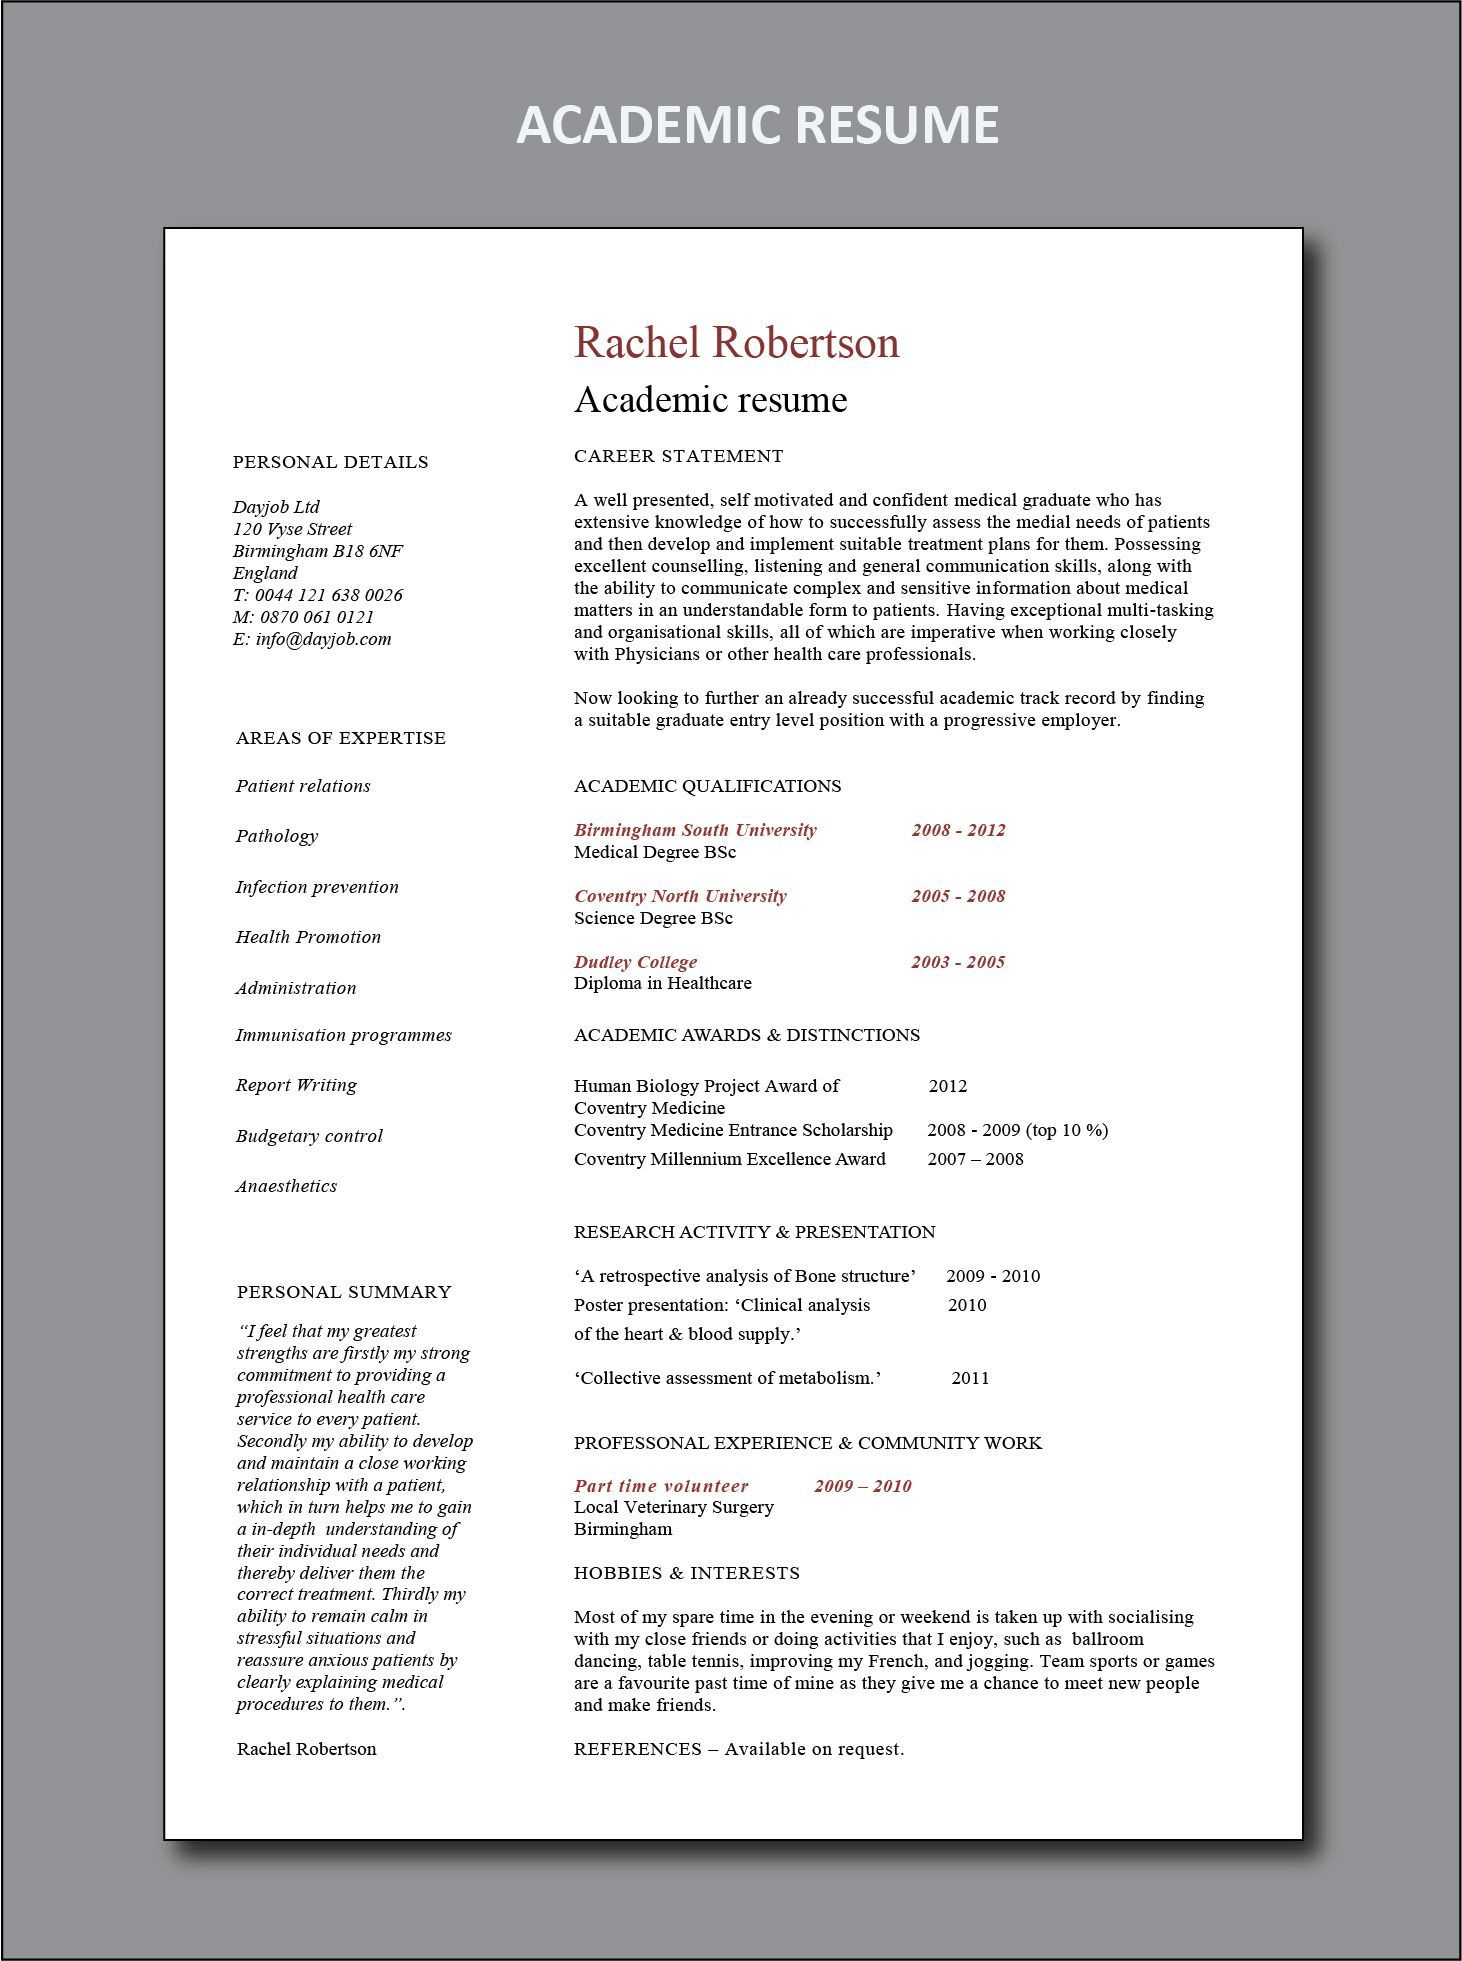 Resume Examples By Industry And Job Title With Images Resume